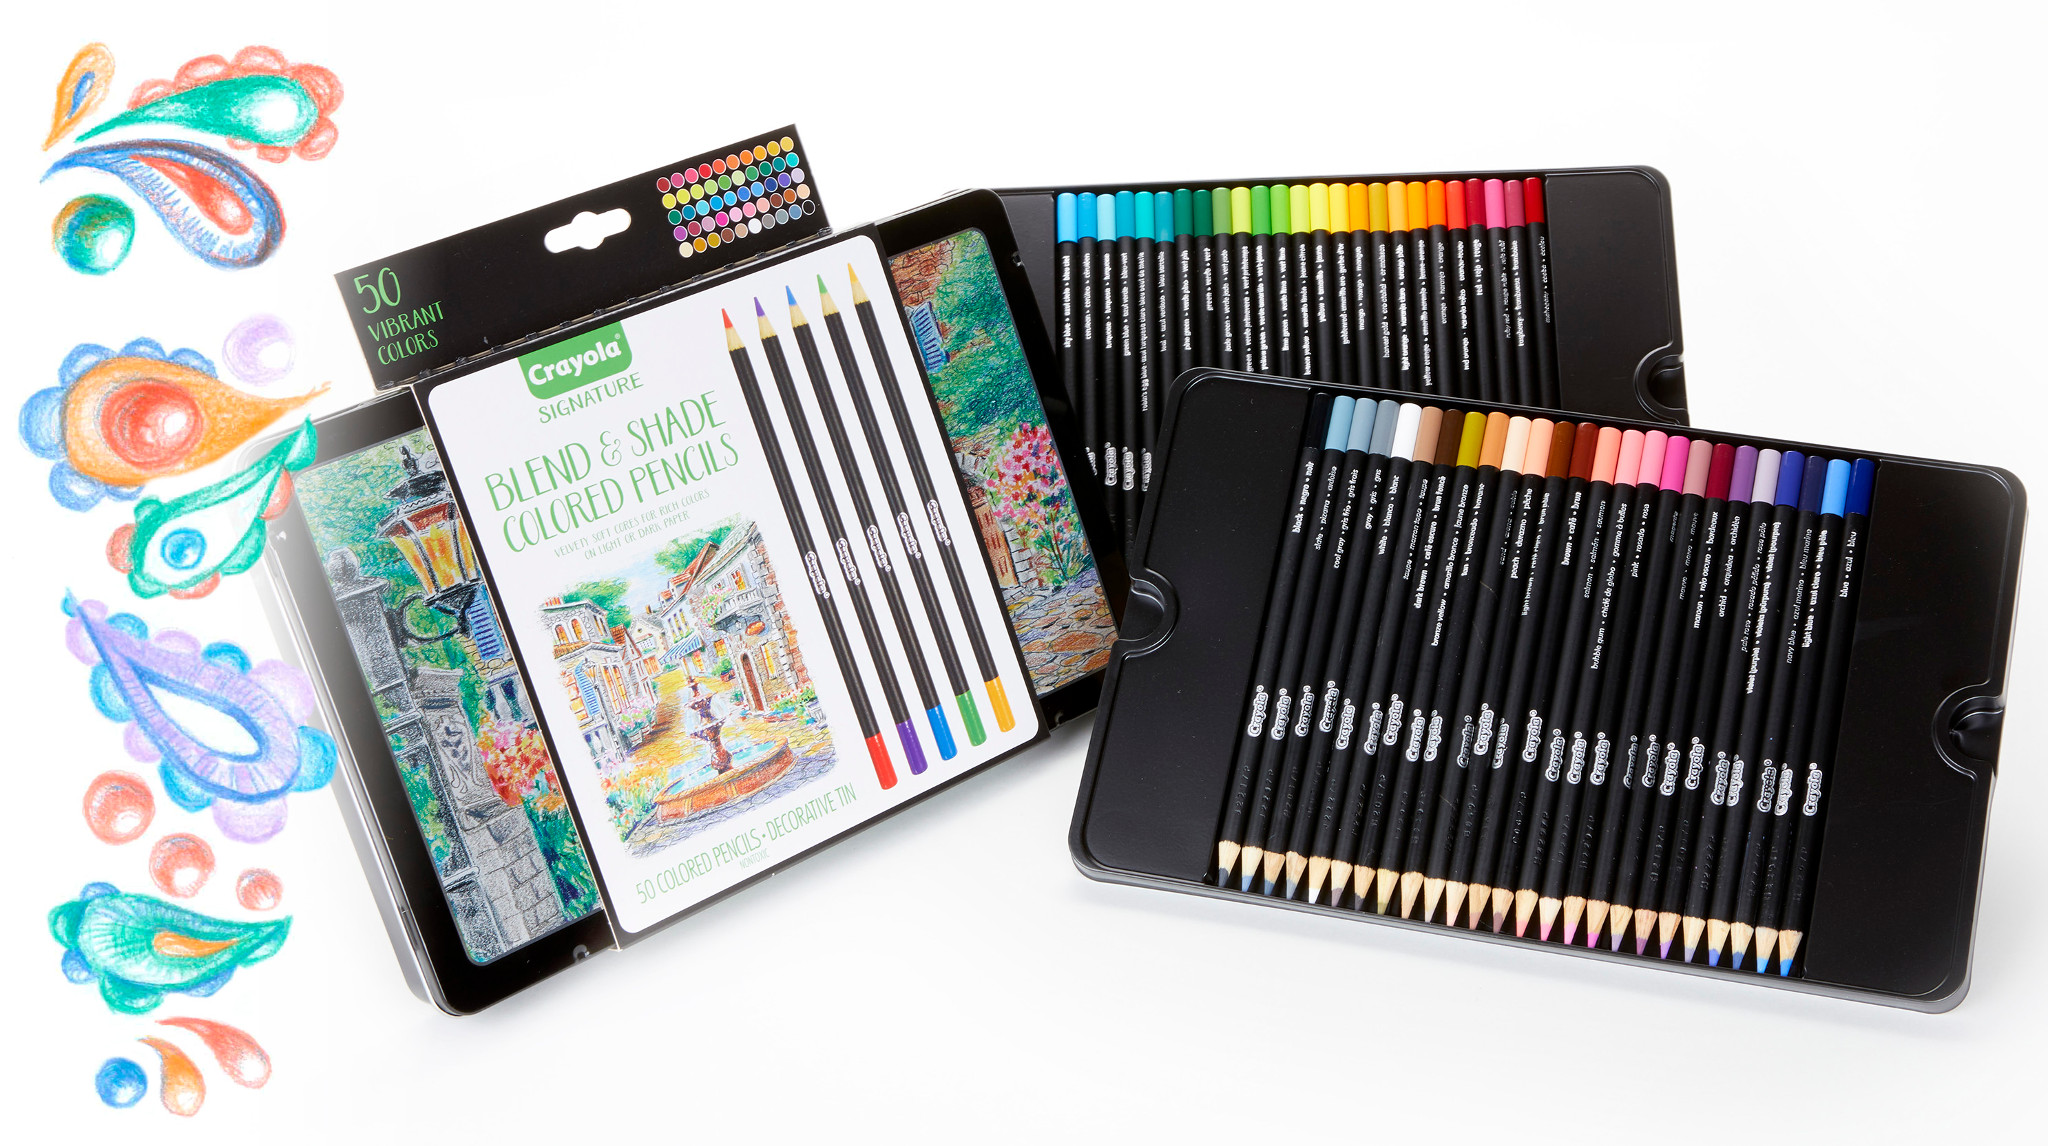 Crayola 50 Piece Signature Blend & Shade Colored Pencils With Decorative Tin by Crayola